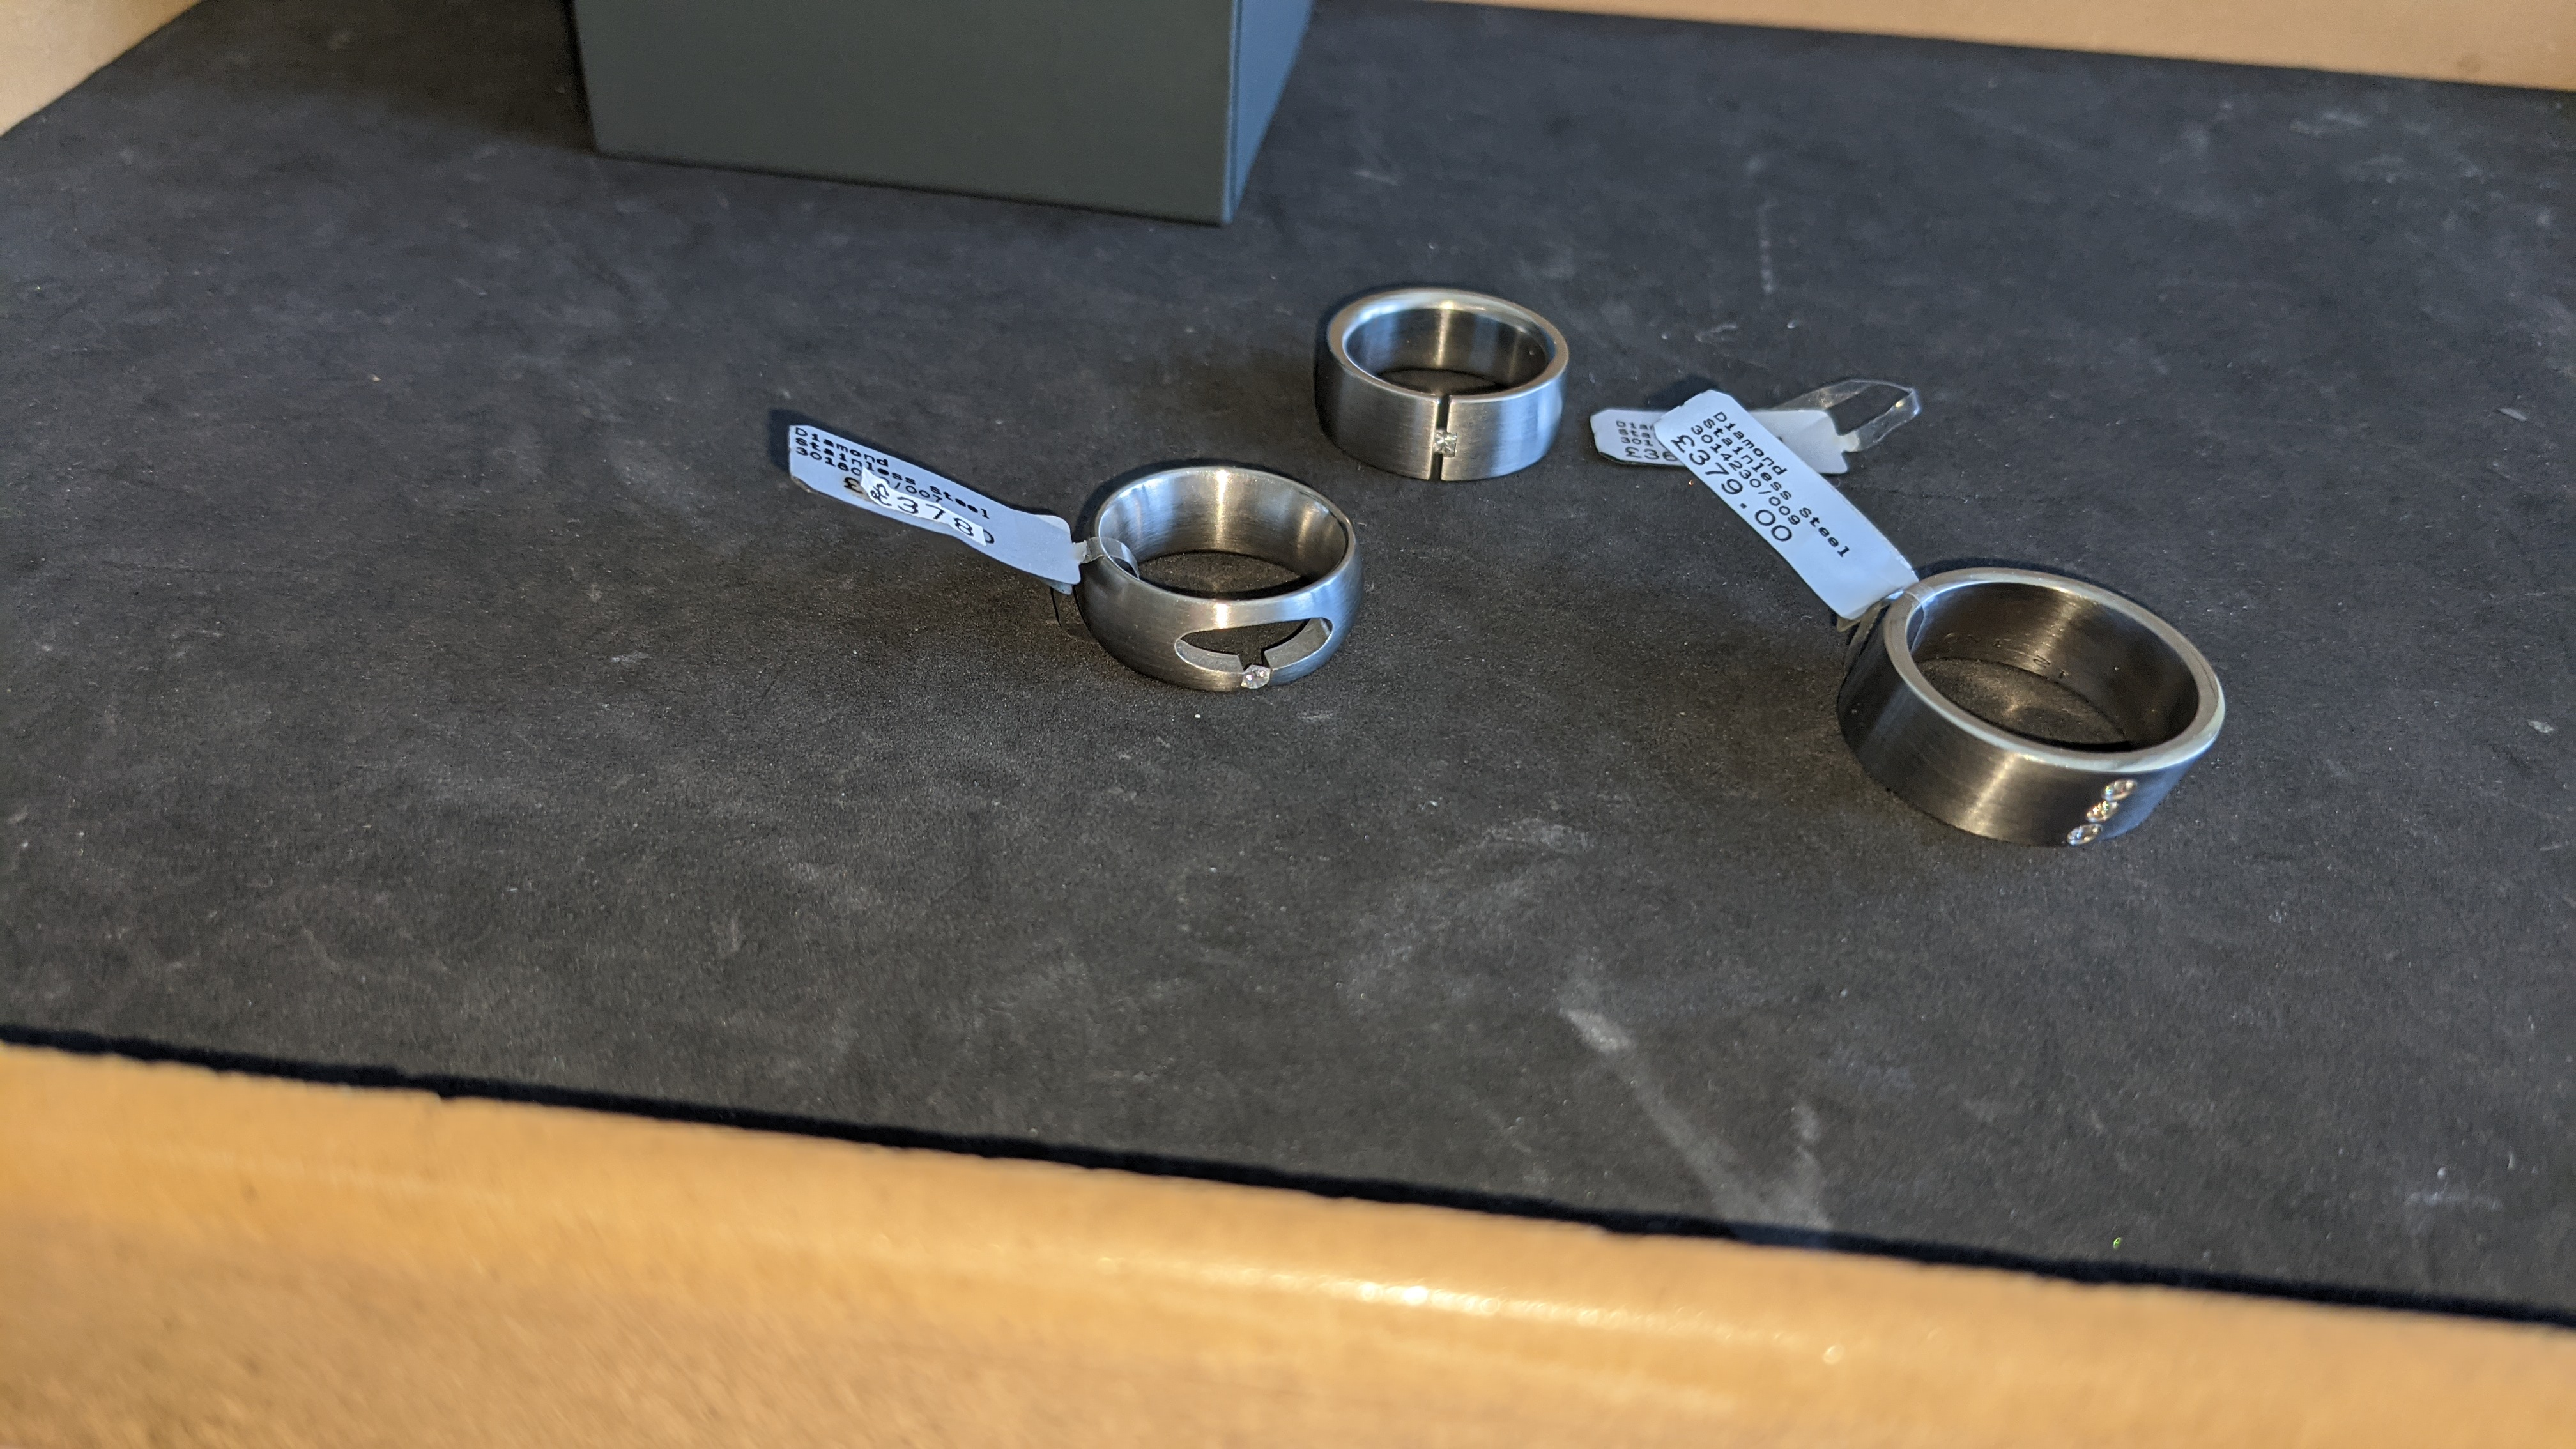 3 off assorted stainless steel & diamond rings with RRPs of £360, £378 & £379. Total RRP £1,117 - Image 13 of 14